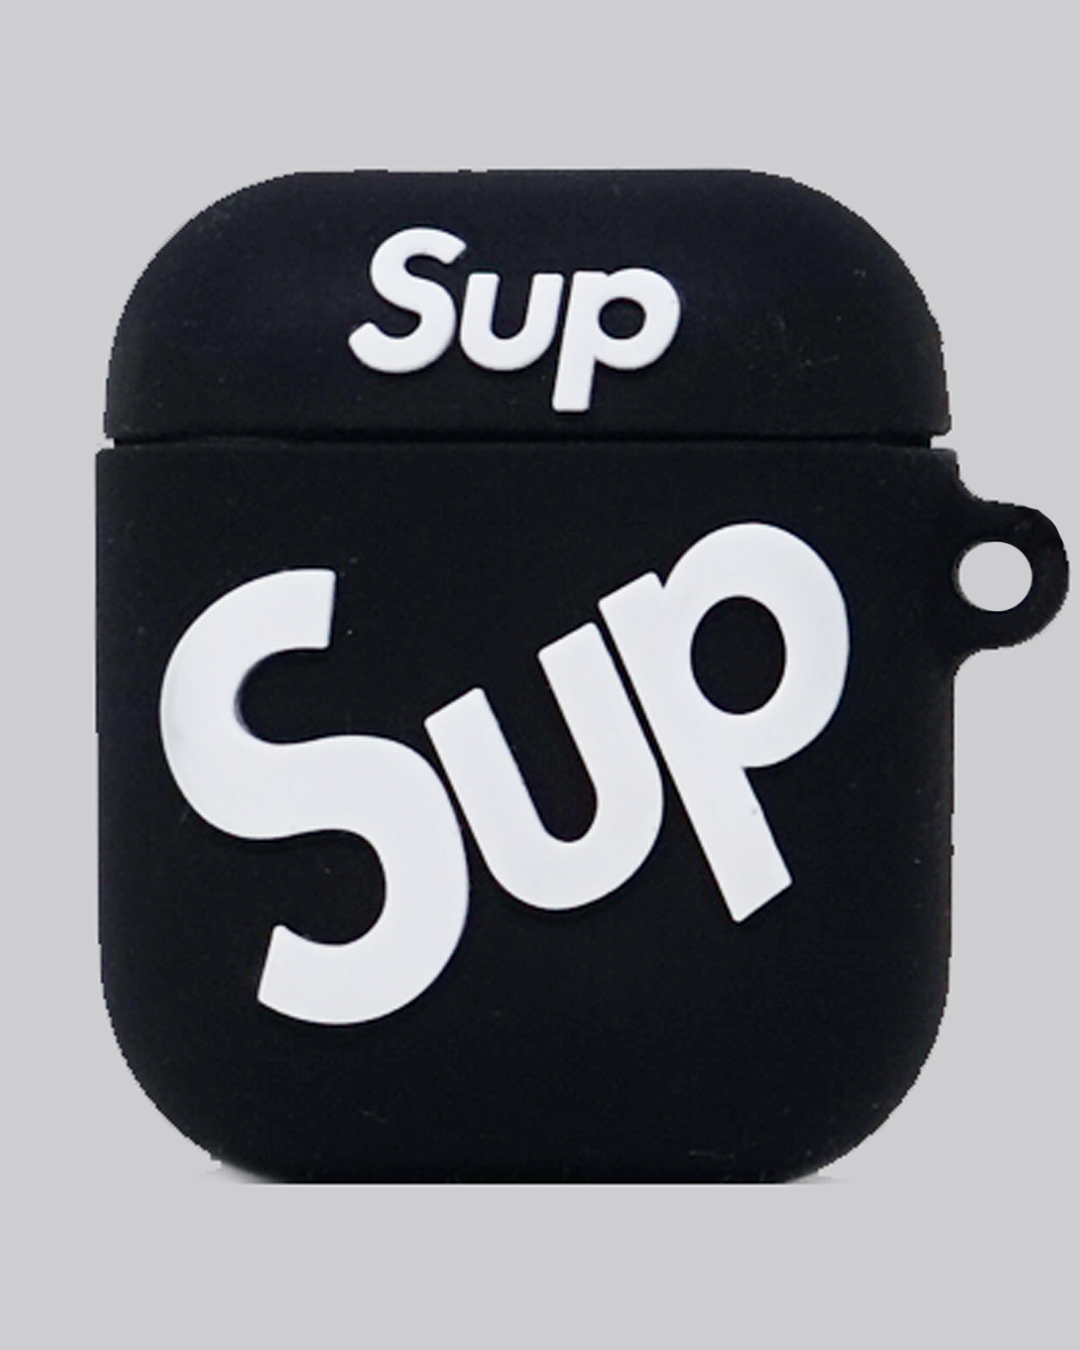 Sup AirPods Case (Black)